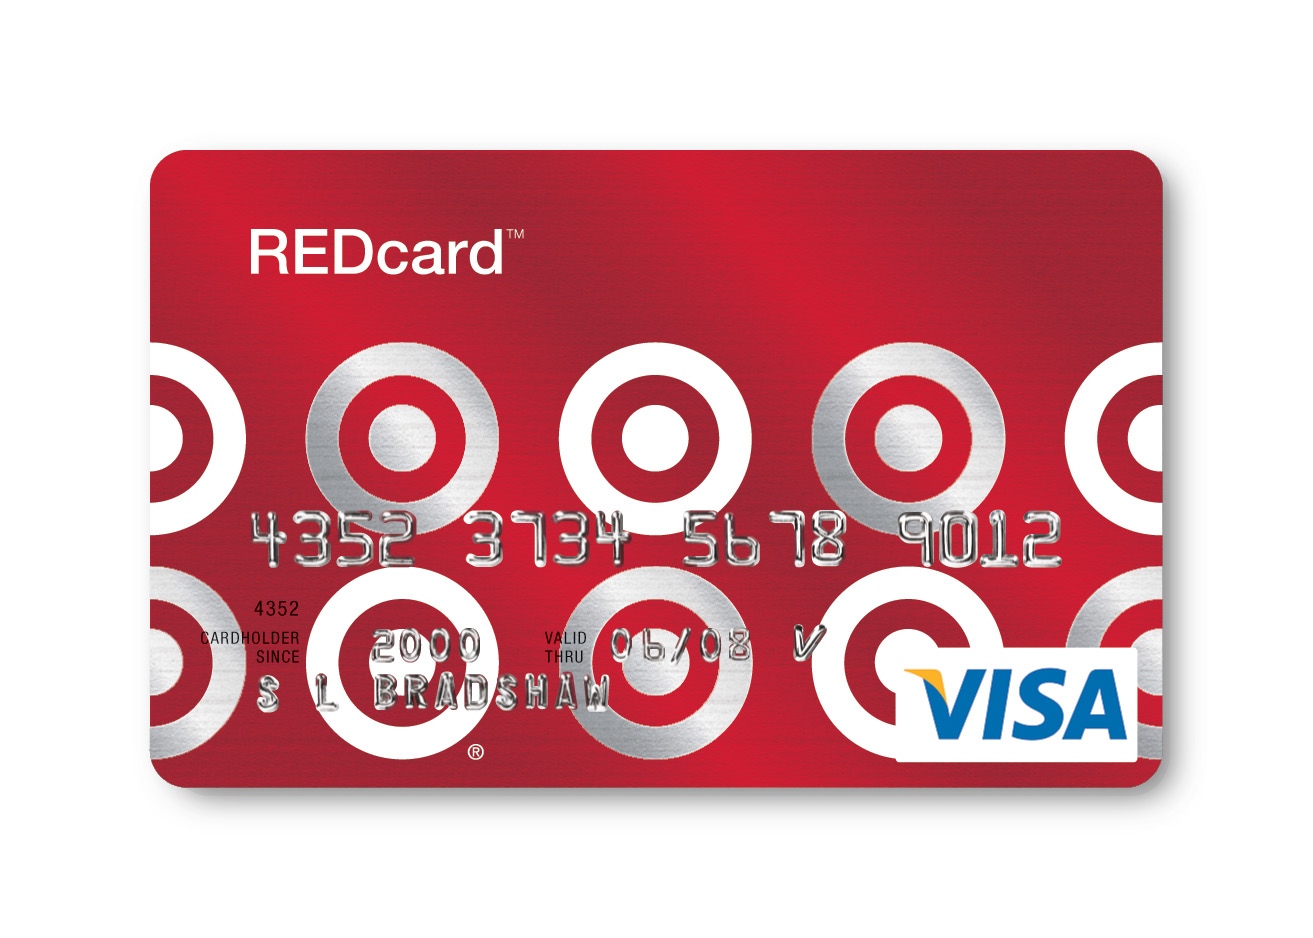 Target Cardholders Receive 5% Off Beginning this Weekend